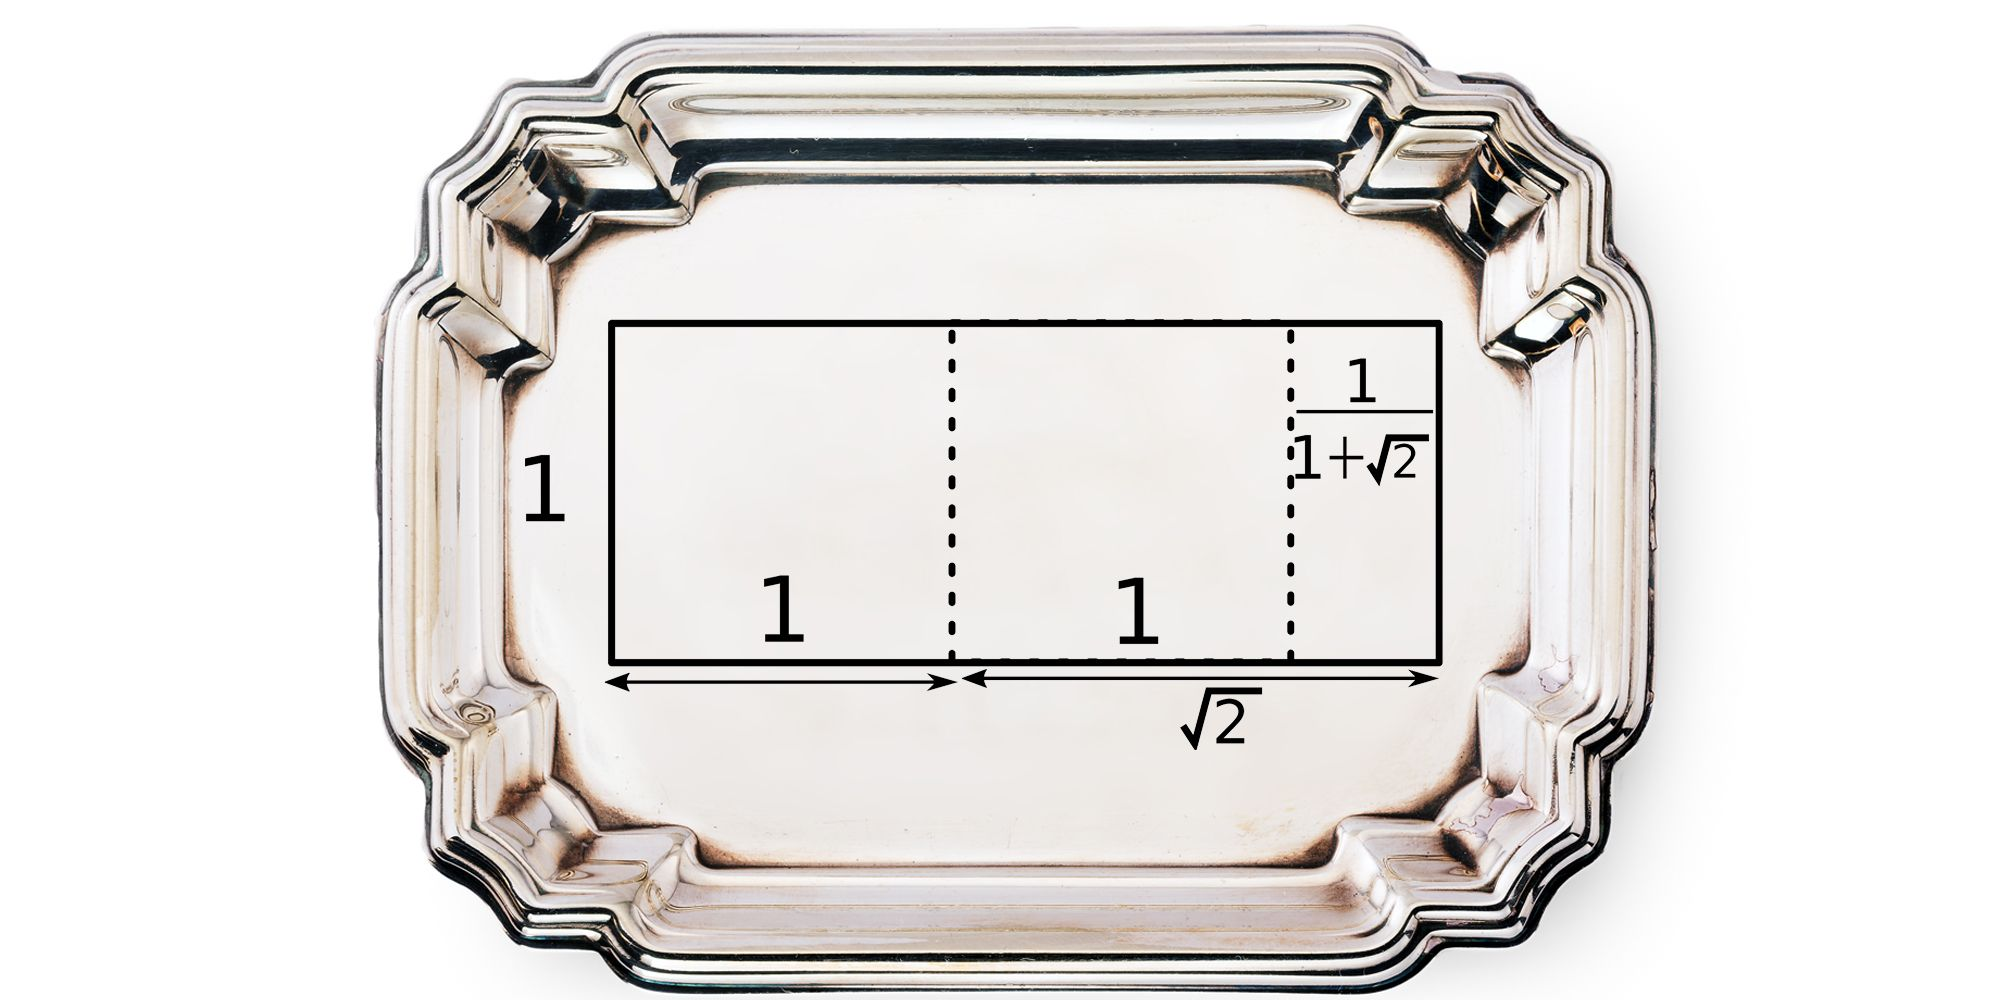 The Golden Ratio Is Cool, but Could We Interest You in the Silver Ratio?